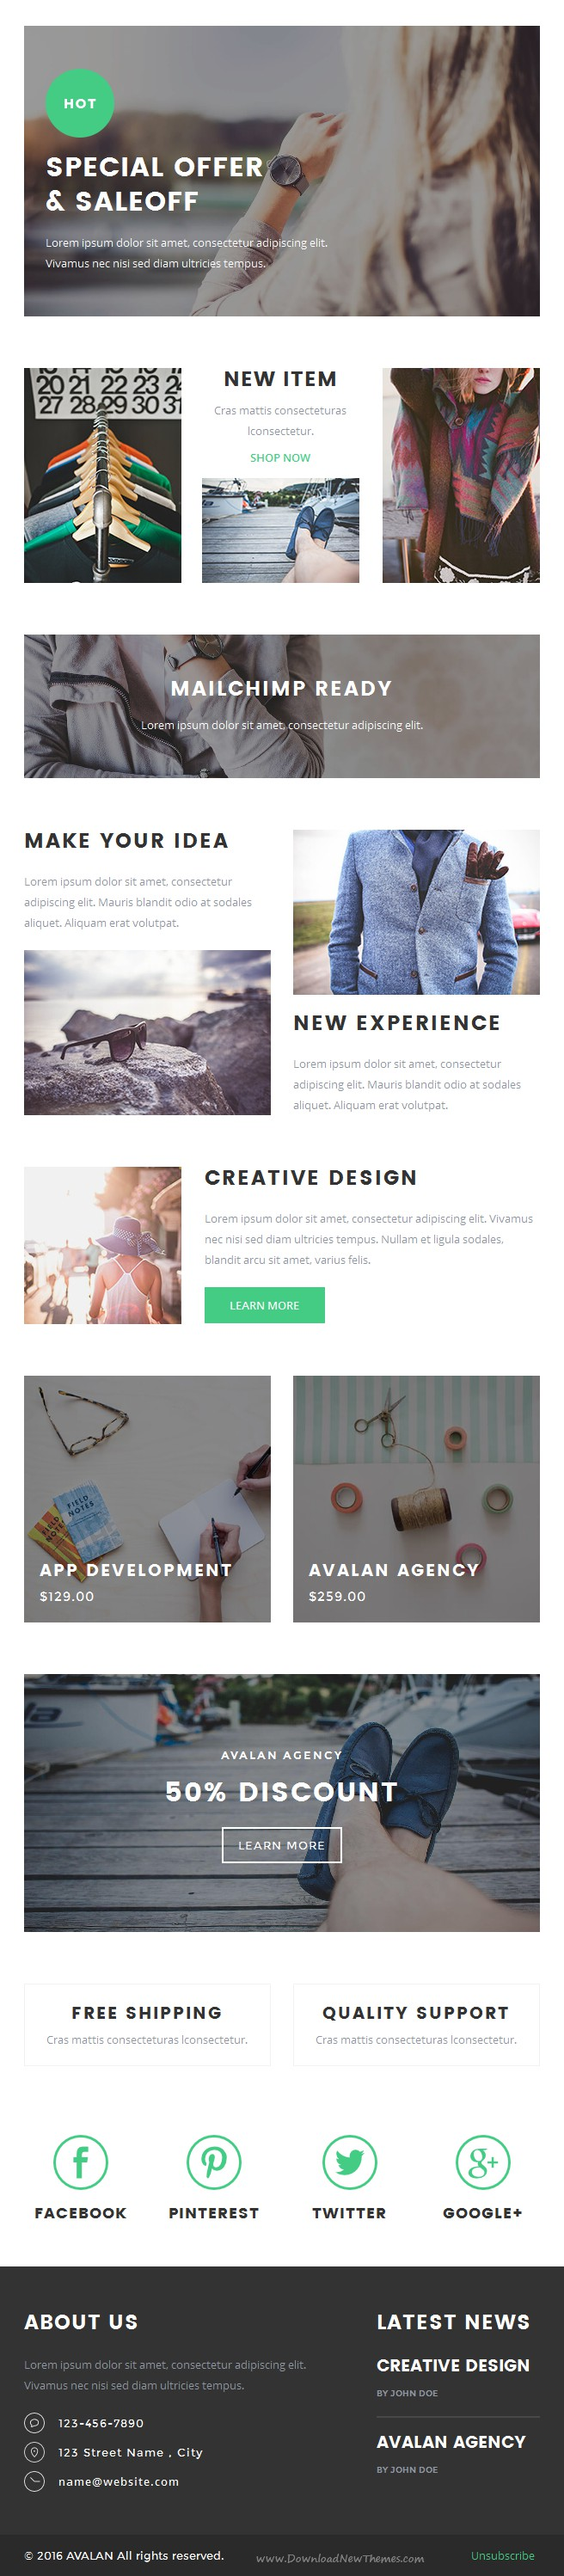 Avalan - Responsive Email Set | Responsive email, Template and ...